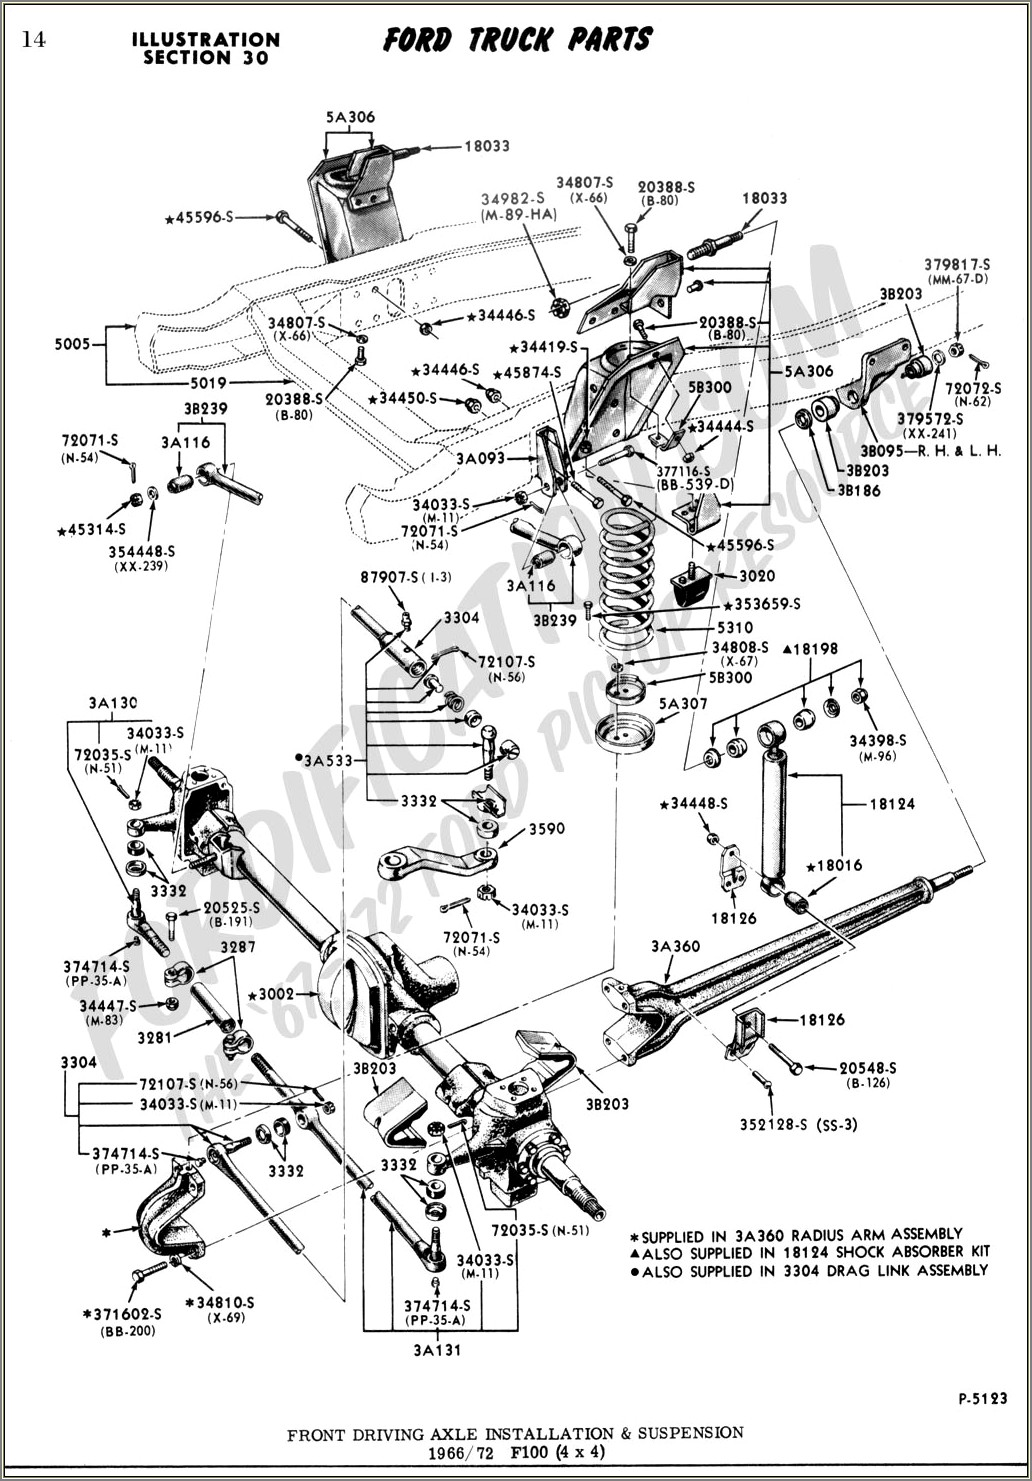 1995 Ford F150 Front Suspension Diagram